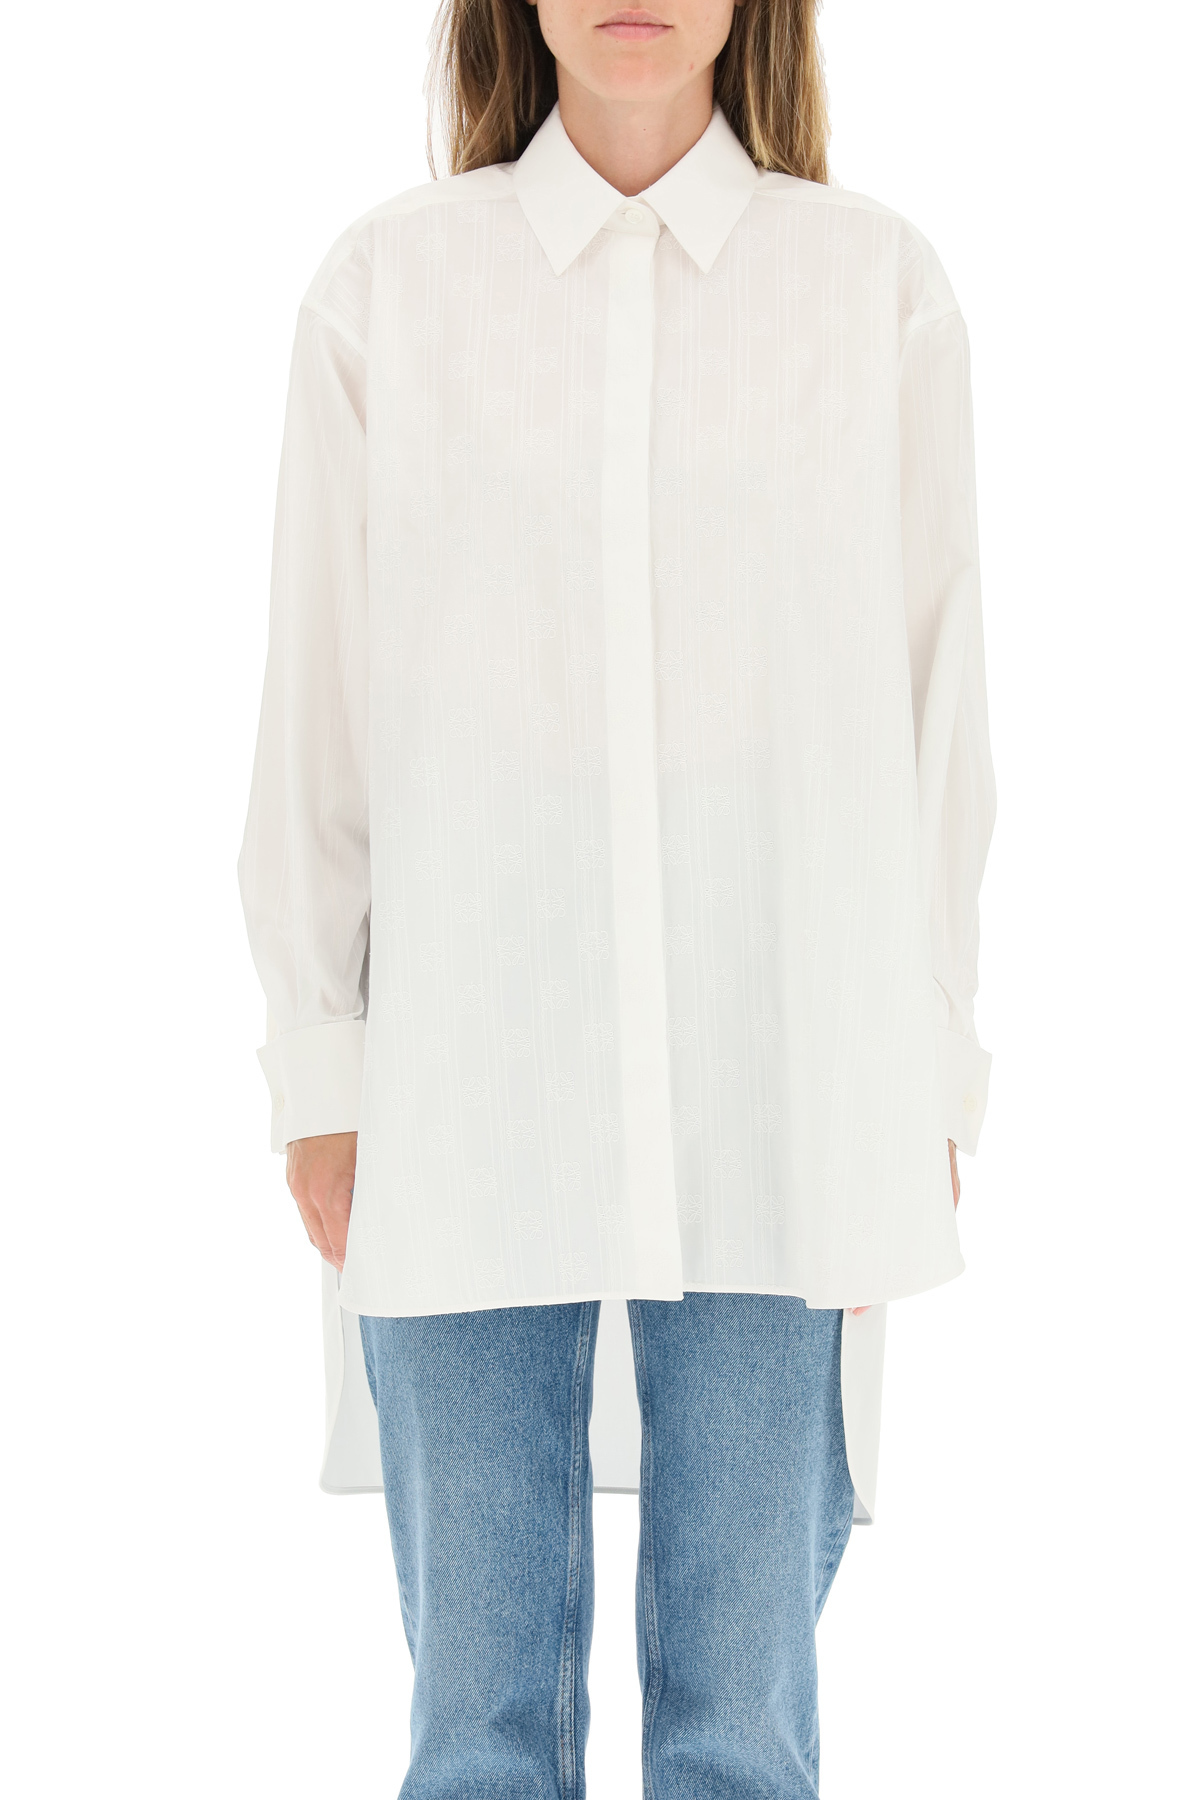 Loewe camicia over a righe anagram